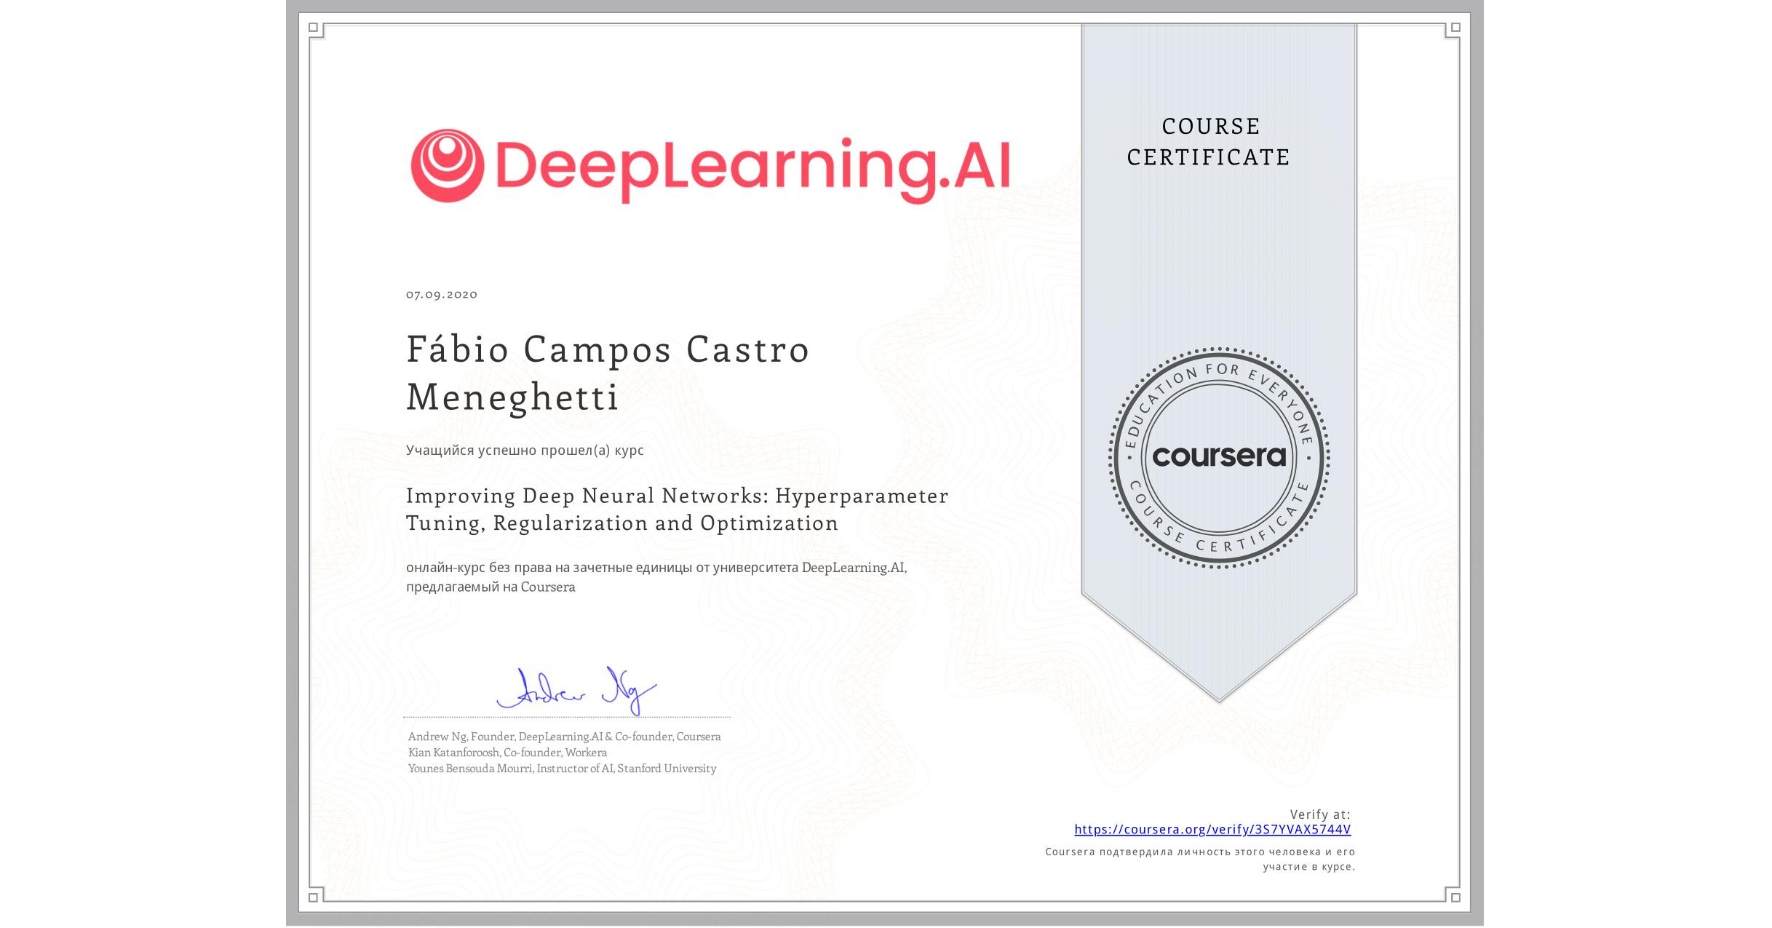 View certificate for Fábio Campos Castro Meneghetti, Improving Deep Neural Networks: Hyperparameter Tuning, Regularization and Optimization, an online non-credit course authorized by DeepLearning.AI and offered through Coursera